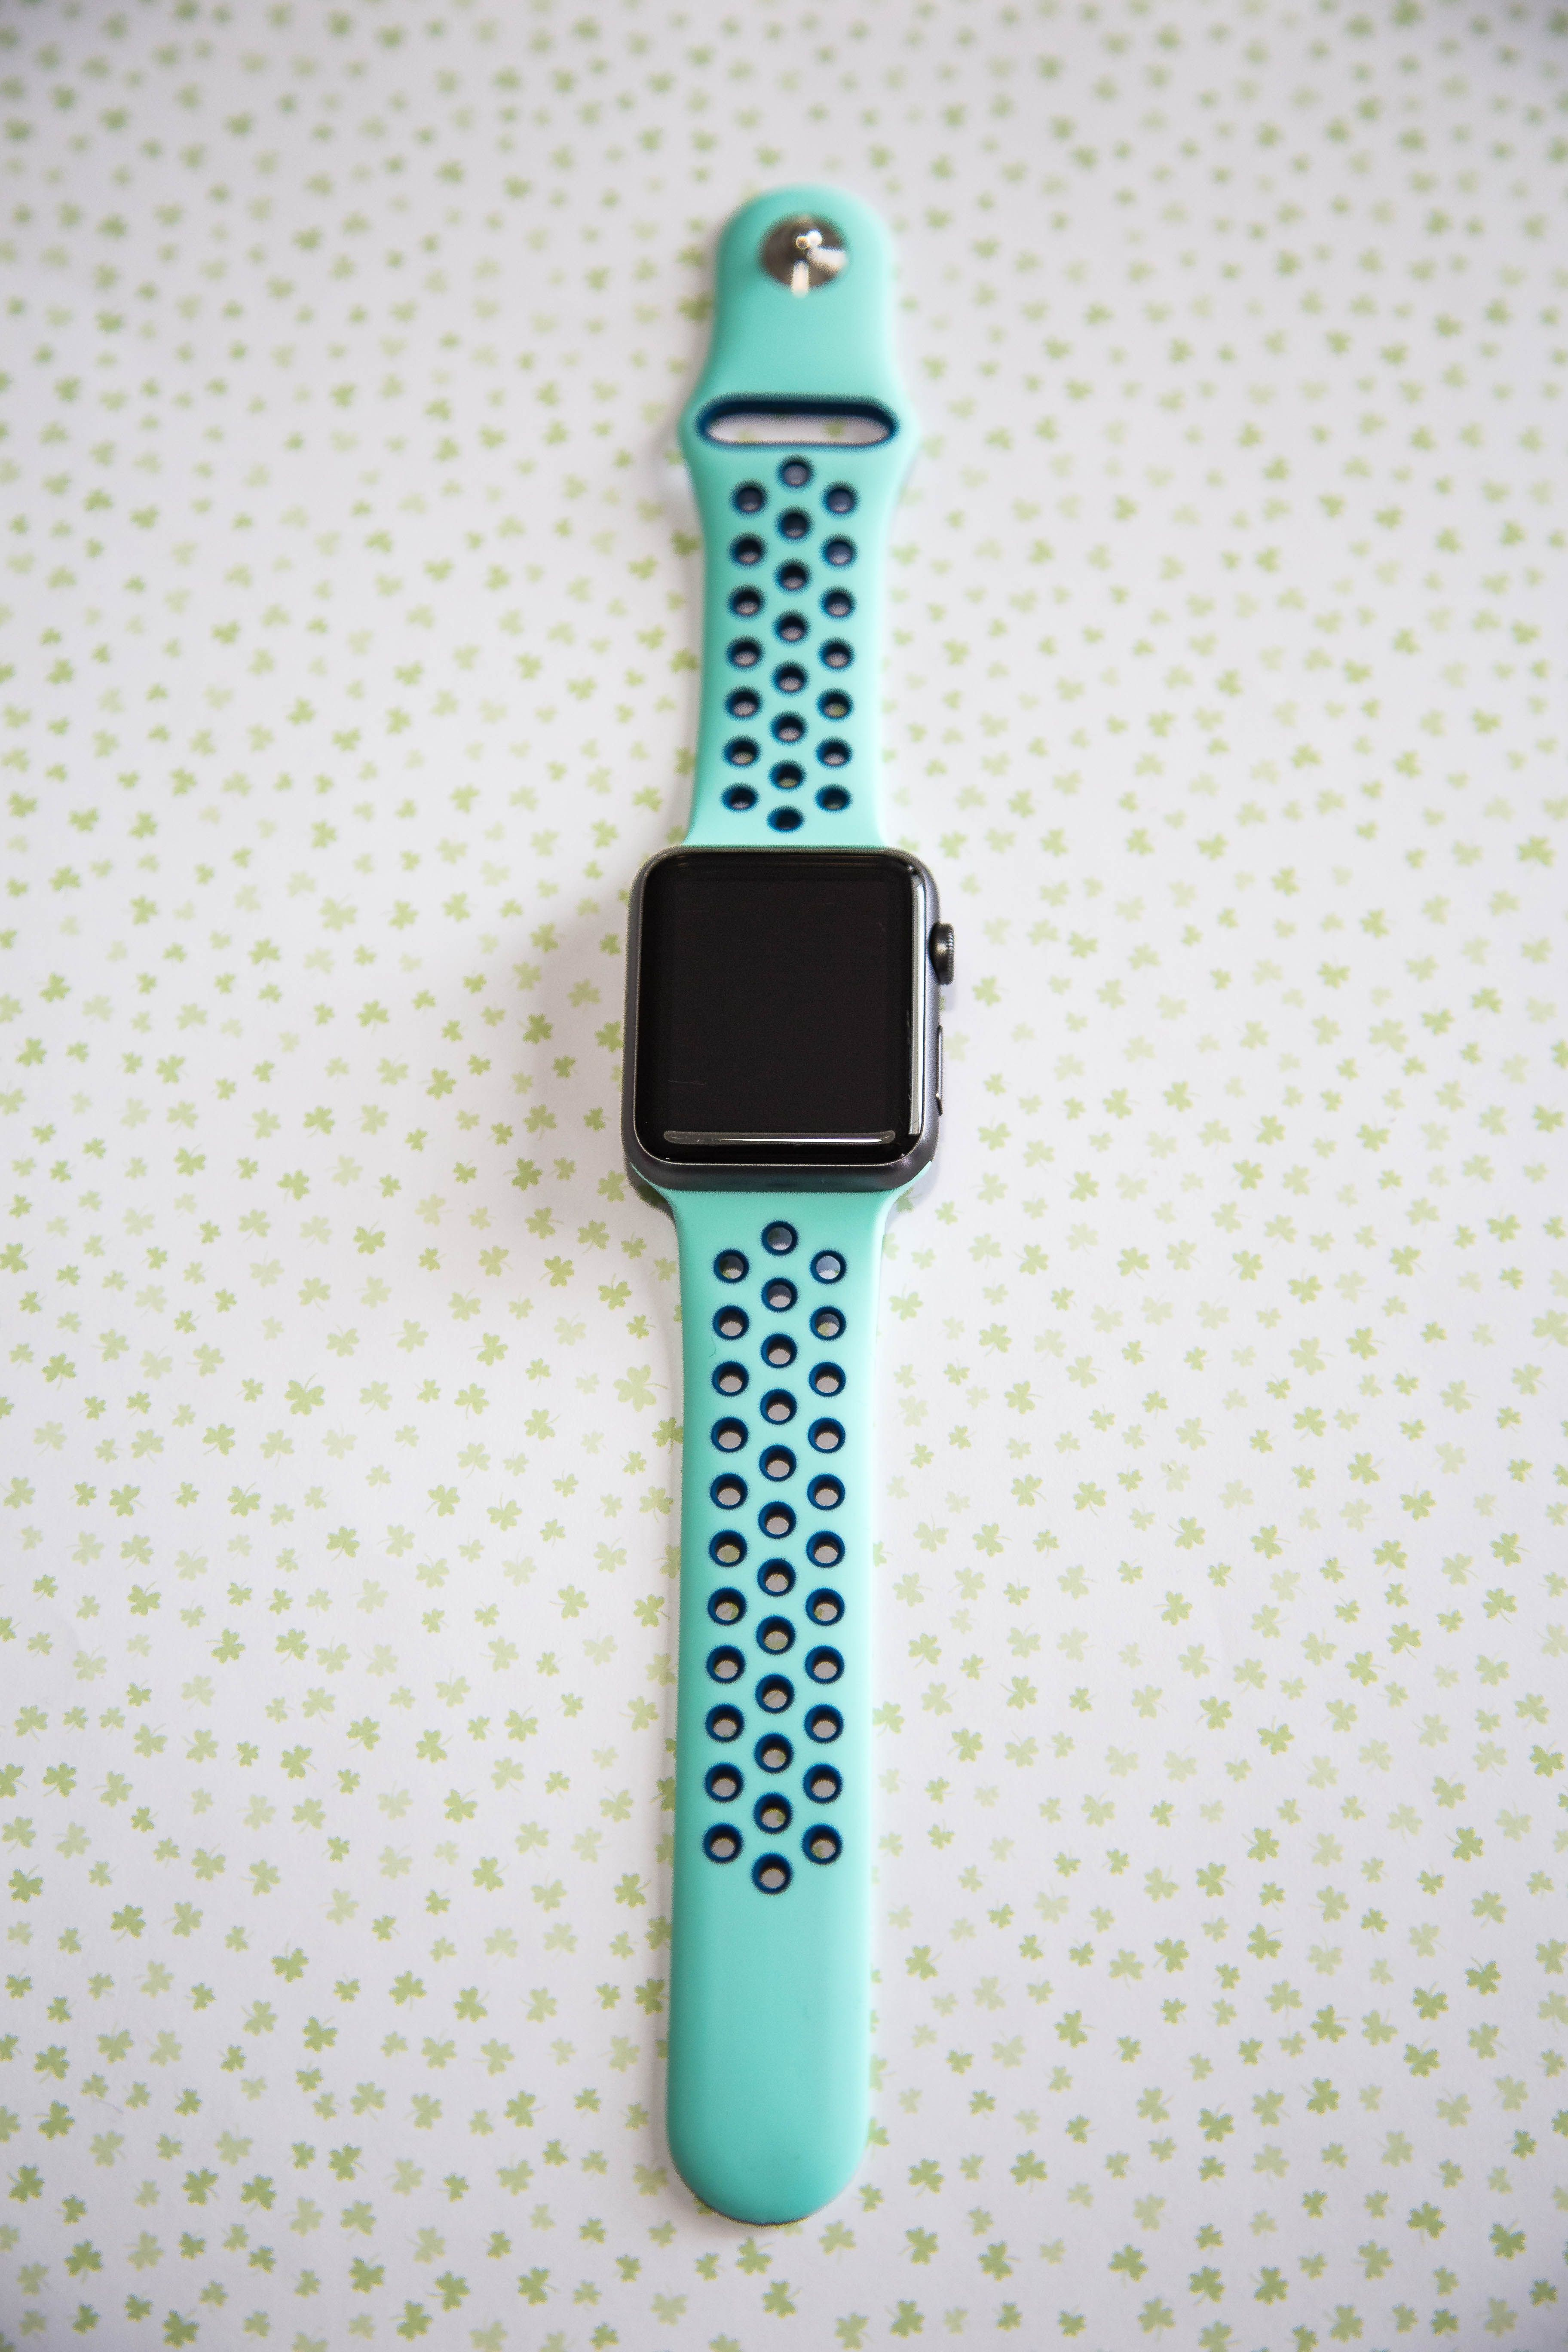 Best Turquoise and Blue Sport Apple Watch Band, All Apple